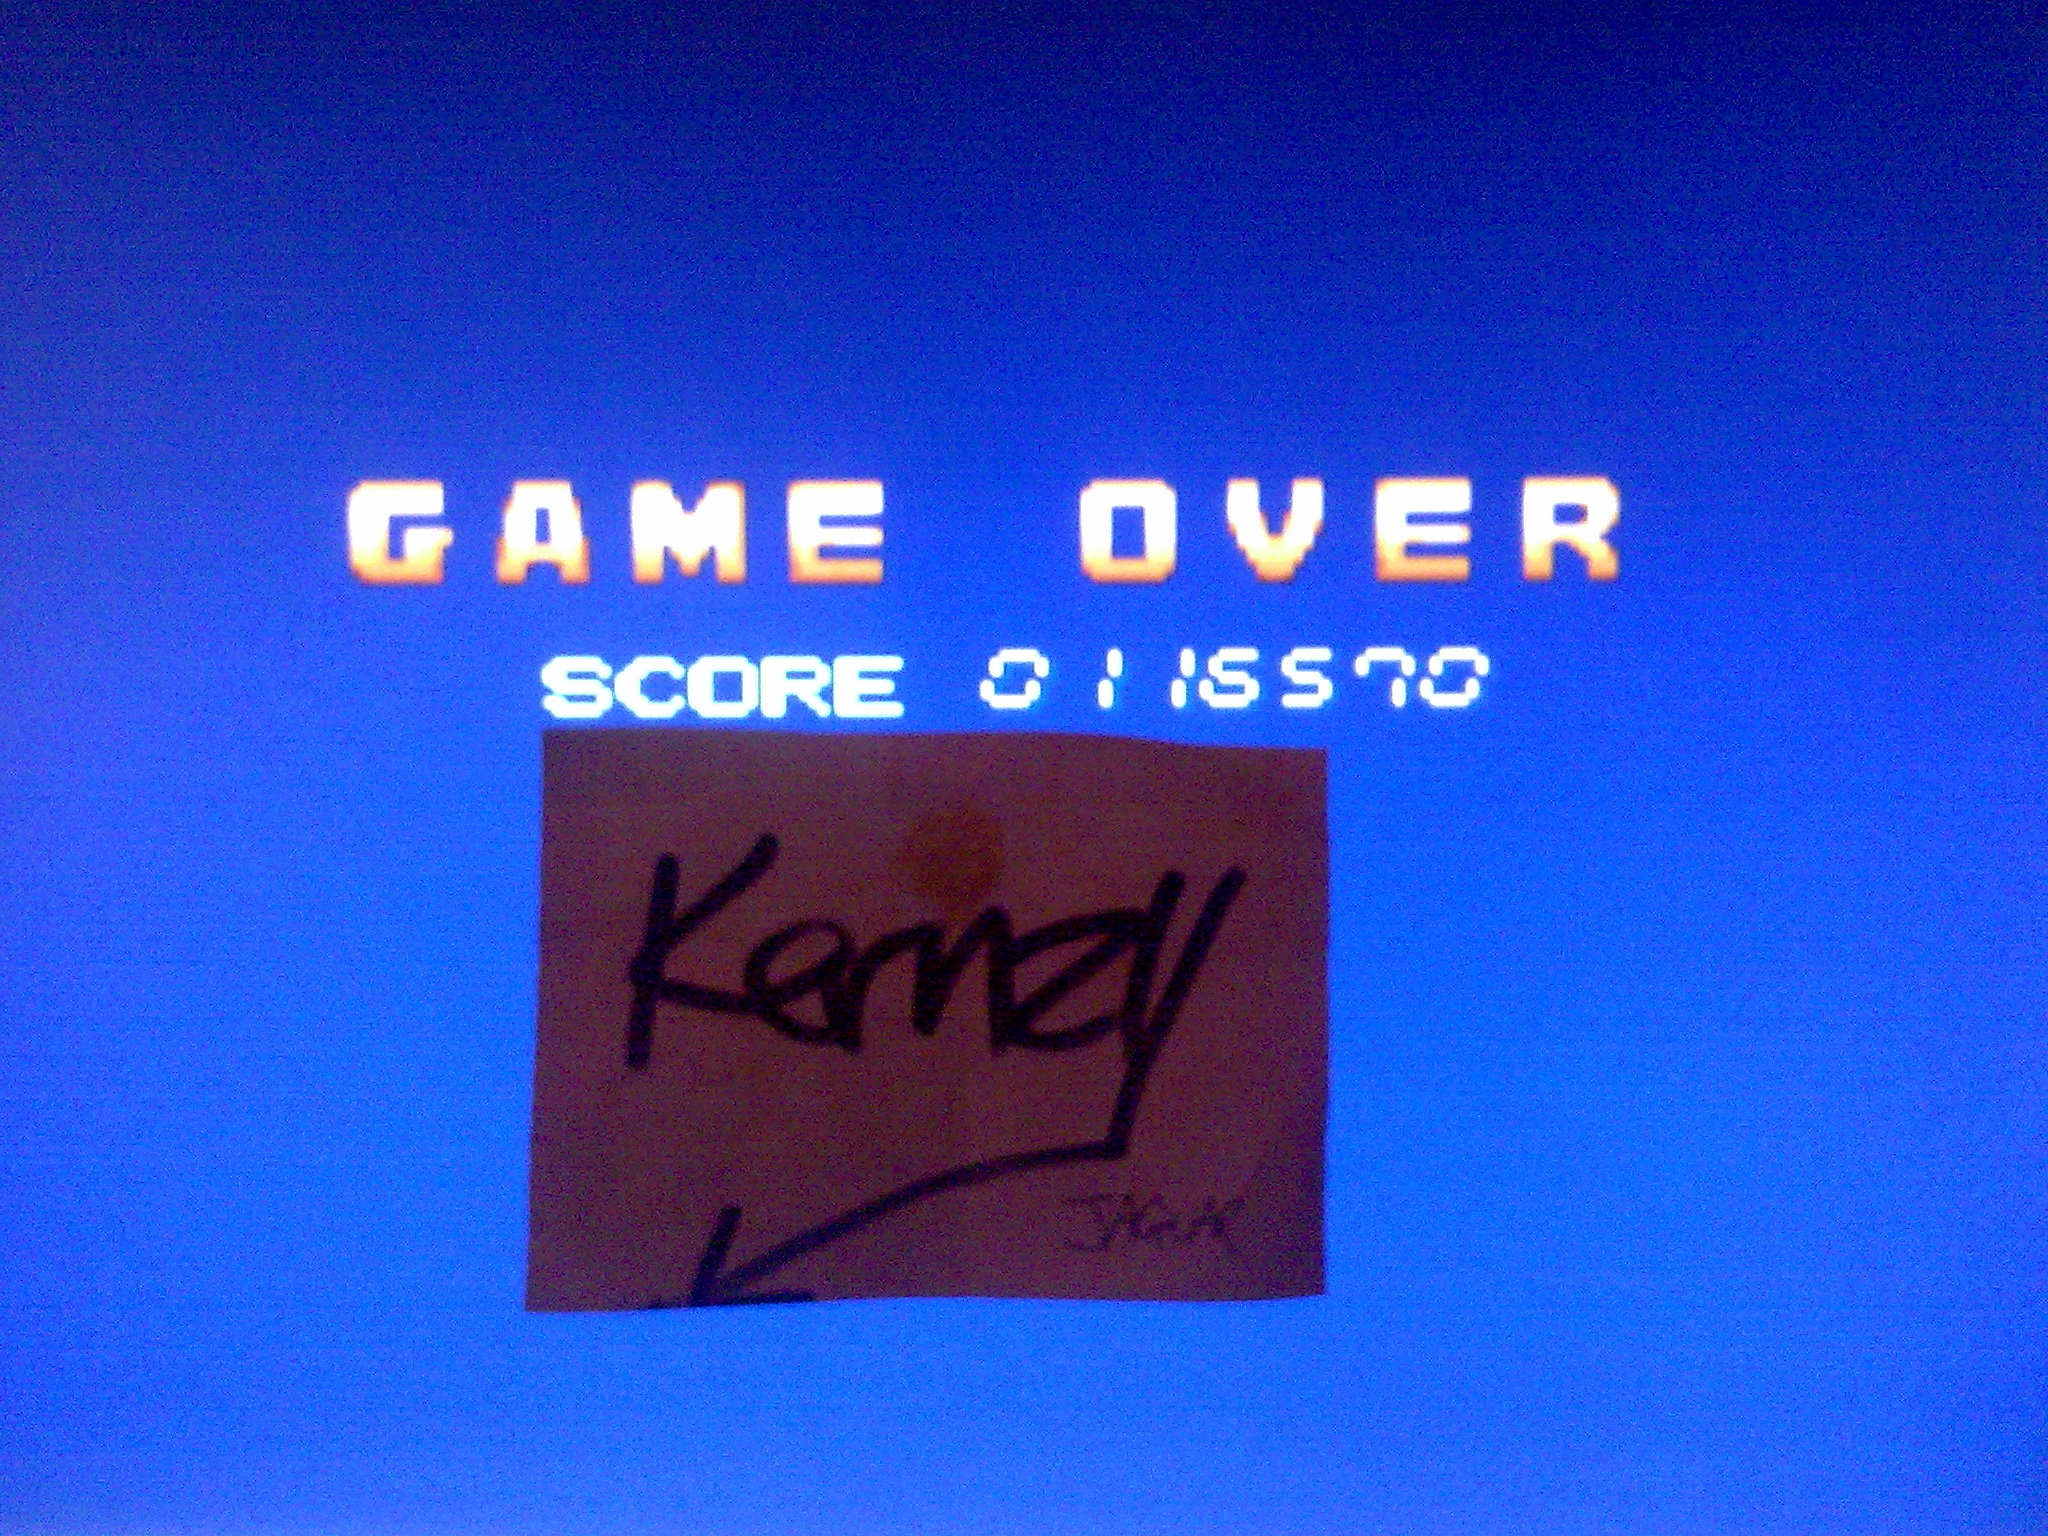 kernzy: Volfied (TurboGrafx-16/PC Engine Emulated) 116,570 points on 2014-10-11 11:20:58